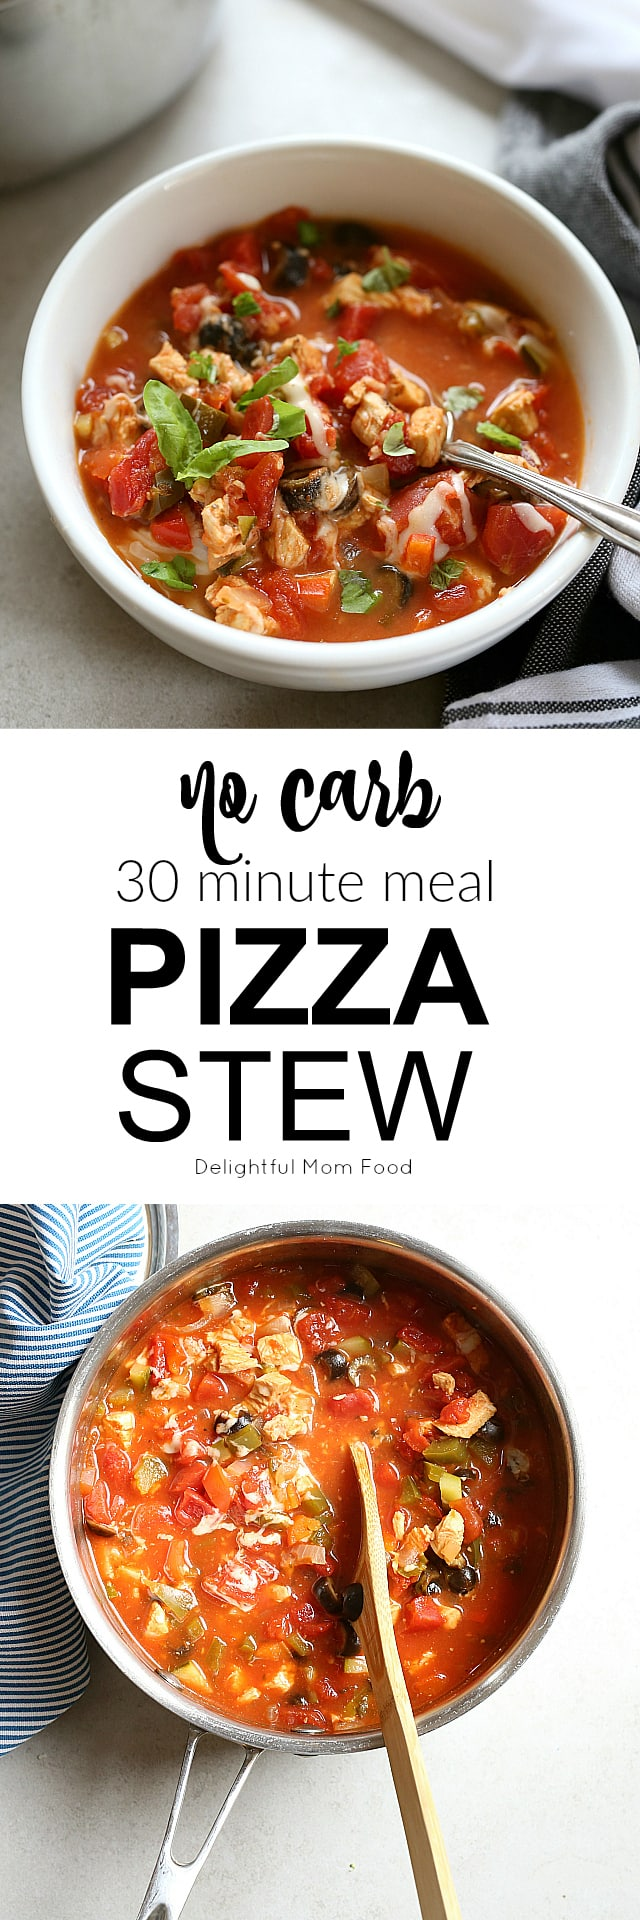 Pizza stew is a great way to use up all those leftover Italian pizza toppings without adding any carbs to your diet! This soup takes as little as 30 minutes and uses hardly any dishes. No deep dish here! Just your favorite vegetables, mushrooms, pepperoni, Sicilian chicken and the mozzarella cheese is optional!